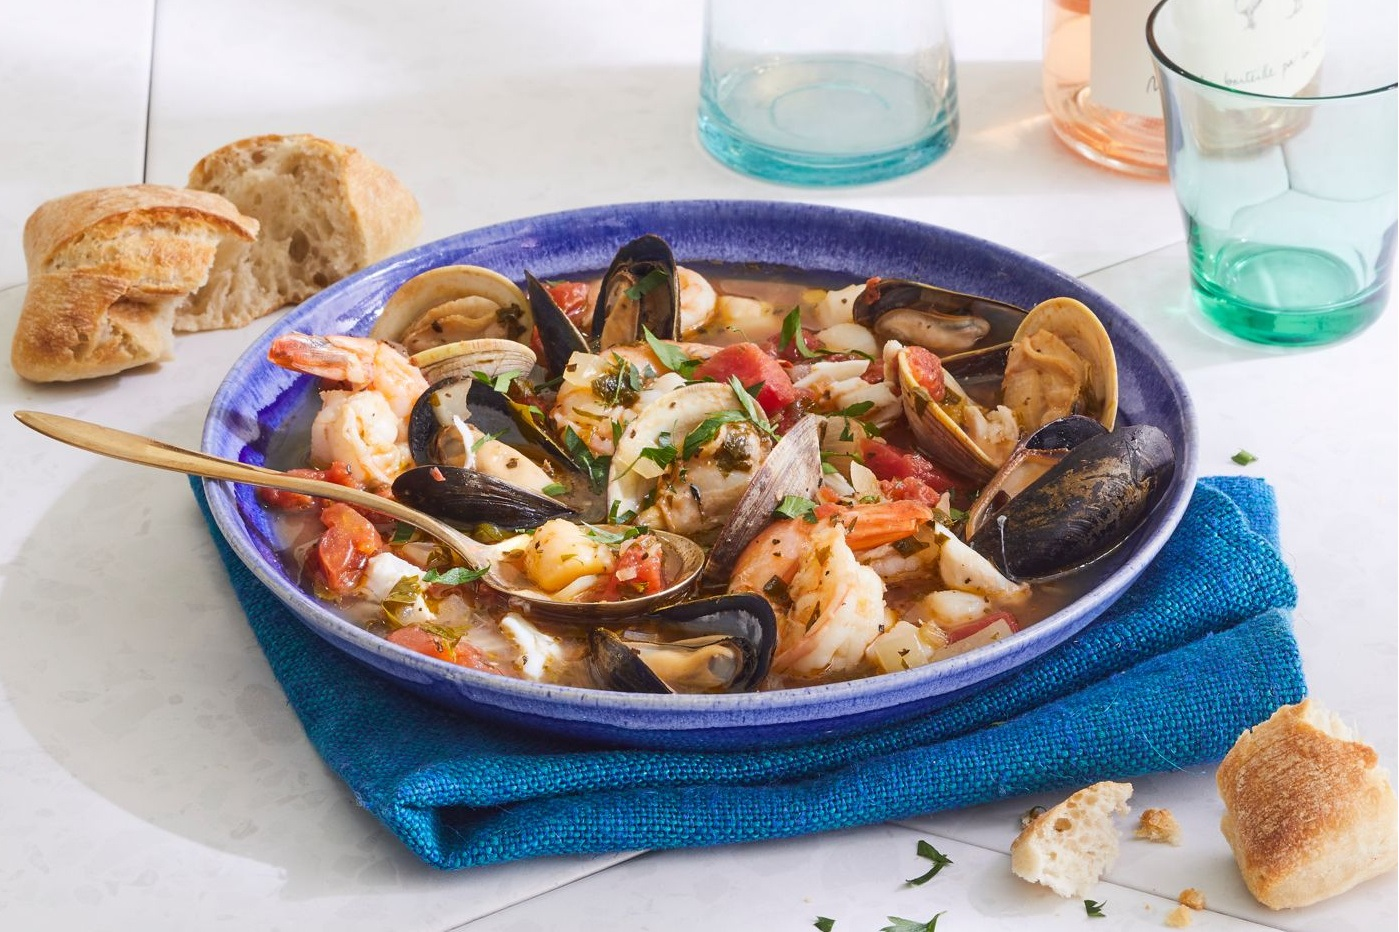 homemade cioppino in a bowl served with bread on the side